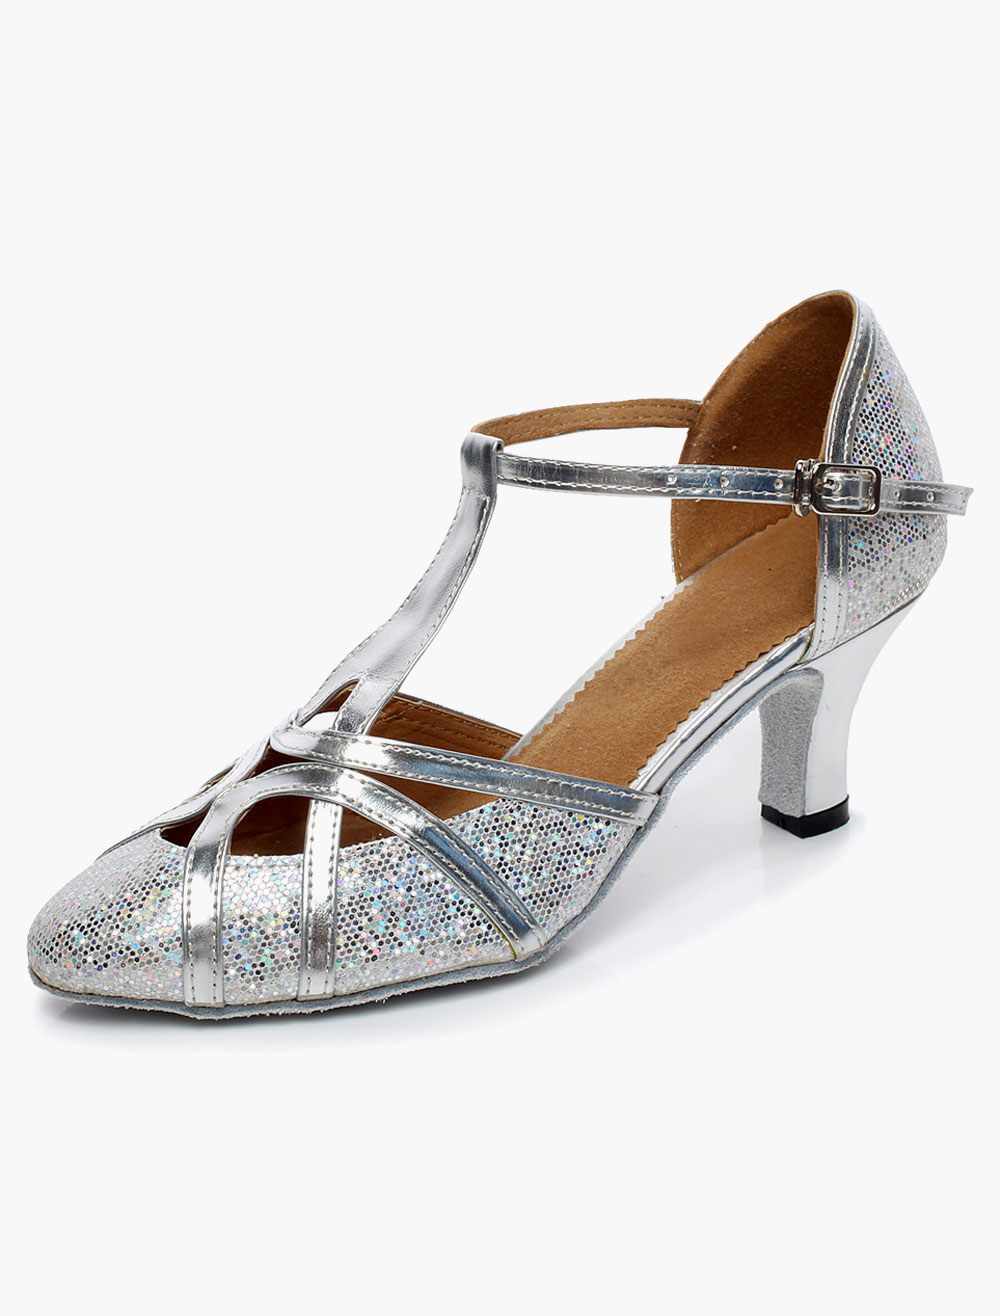 Milanoo / Silver Latin Dance Sandals Pointed Toe Glitter Ballroom Shoes for Women